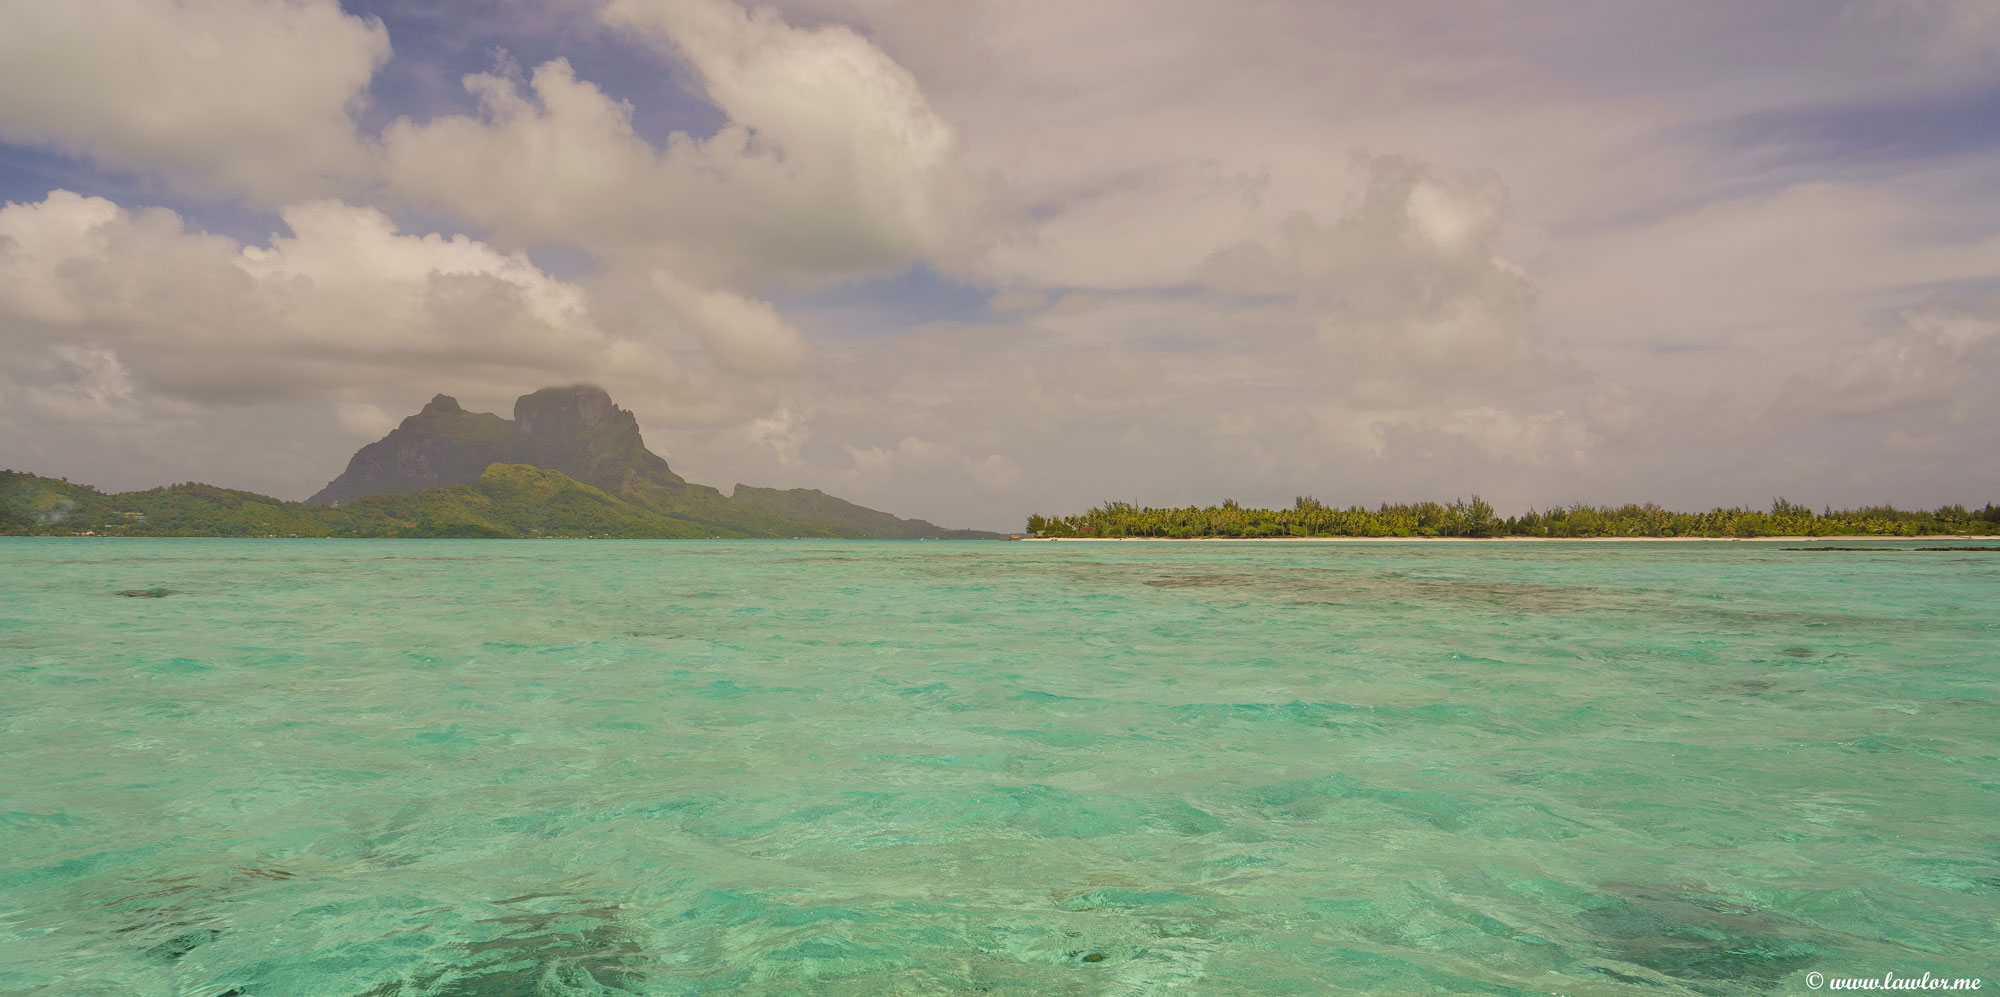 Bora Bora - French Polynesia, Free Landscape Photography, free landscape photos, free nature images, free HD images, free high definition stock images, free stock images download, desktop background, desktop wallpapers, free screensaver, landscape photography